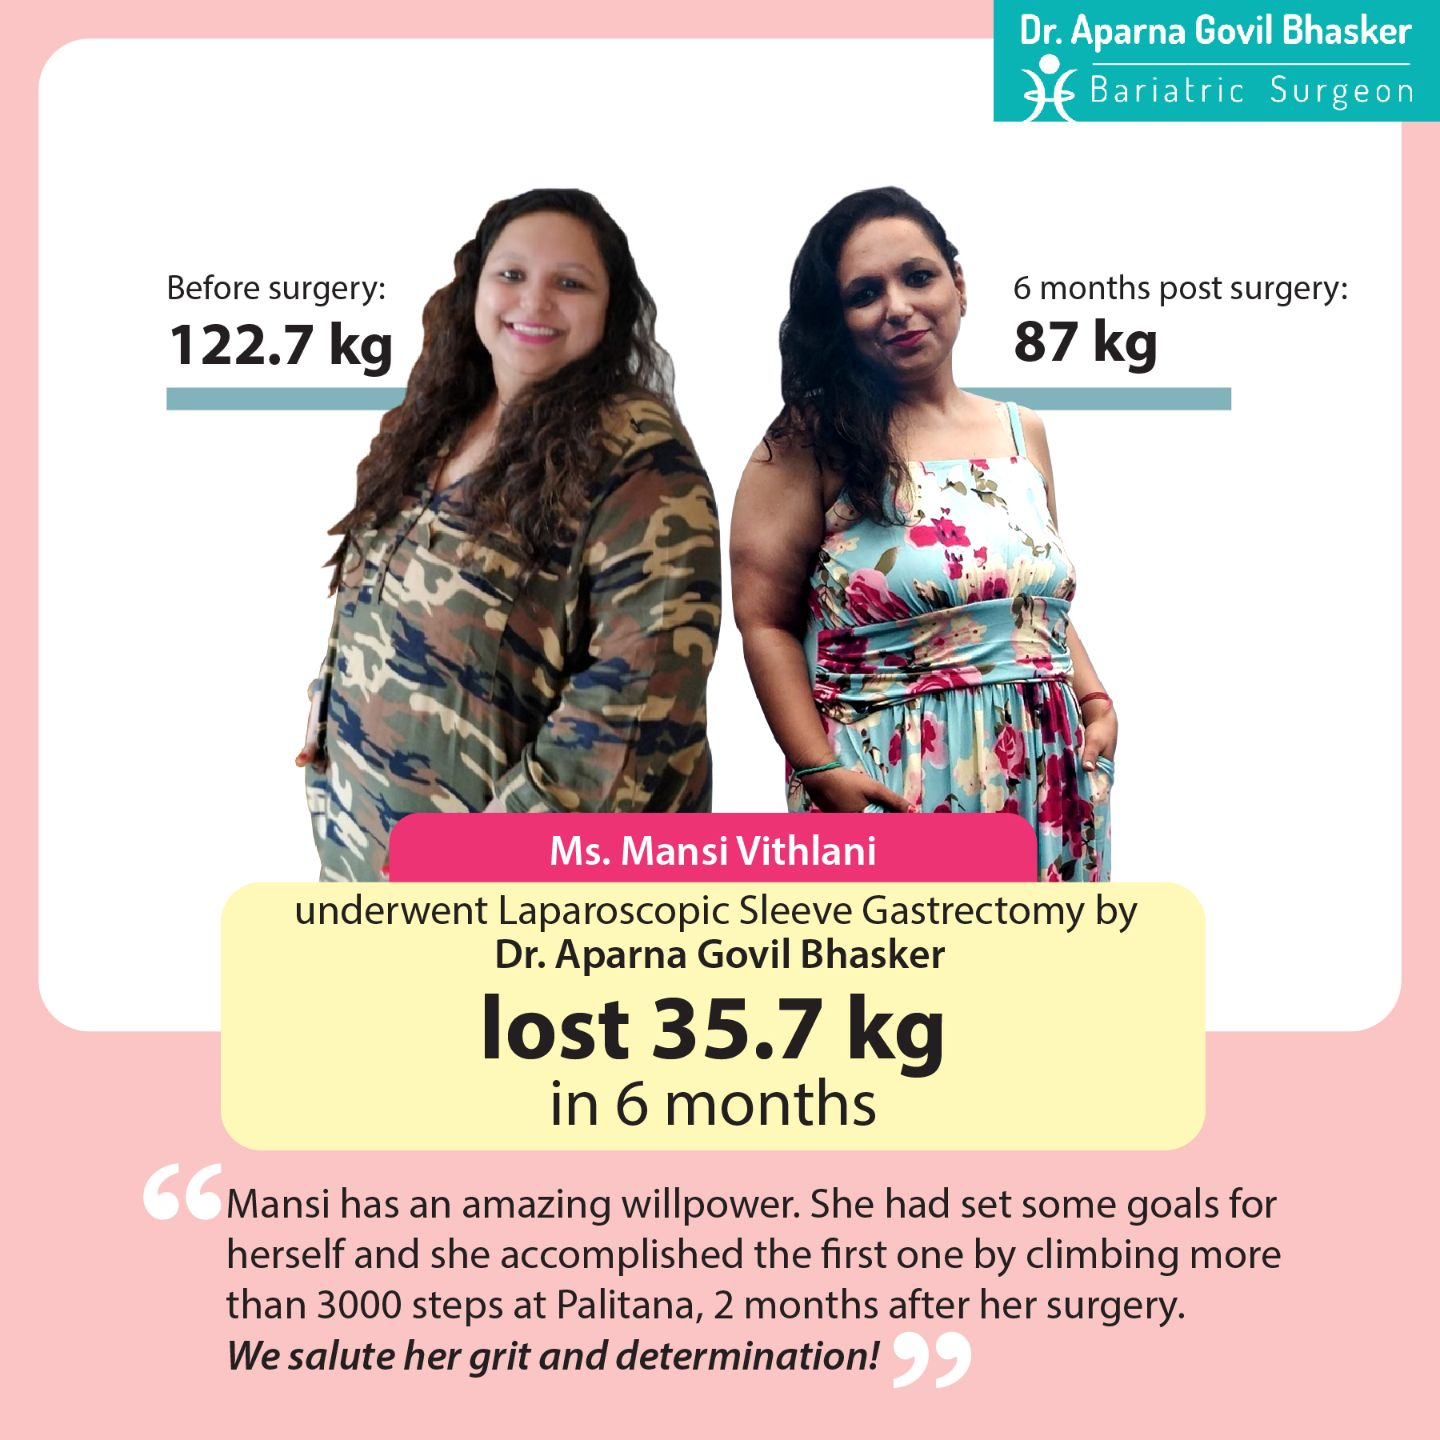 Mansi considered bariatric/ weight loss surgery as she was suffering from grade III obesity with a Body Mass Index (BMI) of 47.5 Kg/m2. At 121.7 Kg she was not able to exercise much due to severe knee pain. She would feel breathless on exertion. Her sonography revealed grade II fatty liver. She underwent a Laparoscopic Sleeve Gastrectomy on 14th of November 2018. She knew that bariatric surgery was not a shortcut to weight loss, and worked very hard on changing her lifestyle post surgery. She exercises for 2-3 hours daily and follows a great diet regime. She has an amazing will power as she was able to accomplish her goal of climbing more than 3000 steps at Palitana just after 2 months post surgery. She lost 35.7 Kg in 6 months, we salute her grit and determination!